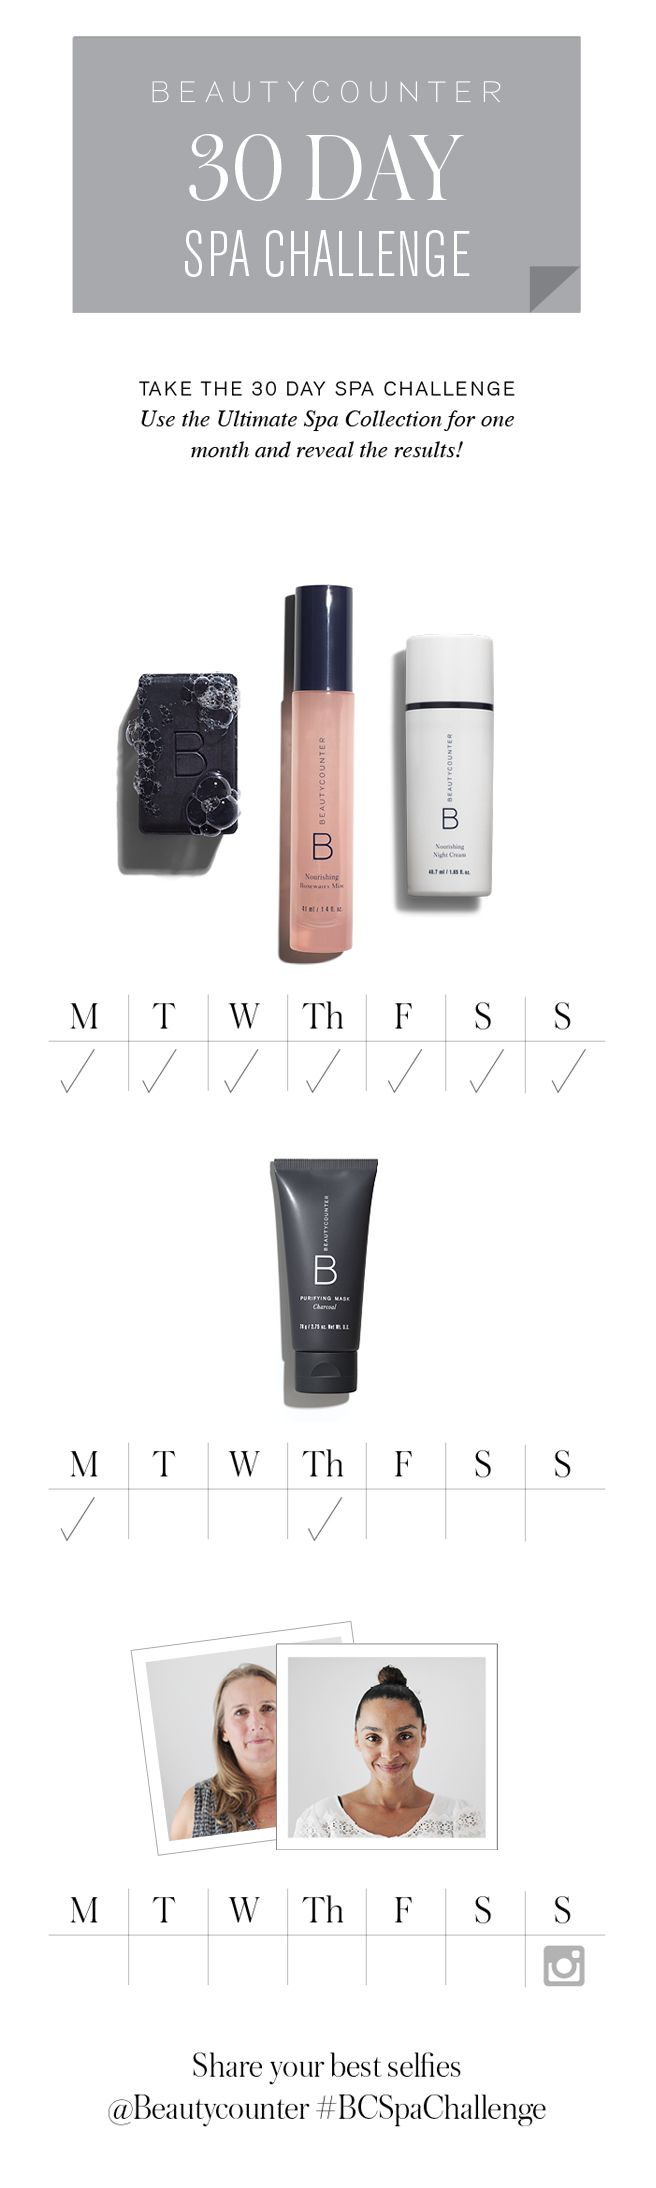 For one month, we're detoxing with the beauty darling of the moment, charcoal—and we want you to join us! Take the 30-Day Spa Challenge alongside the Beautycounter Team and post your progress along the way. We've created a simple, 4-week routine for you to follow that includes our favorite deep-cleansing classics, including the charcoal mask and cleansing bar. For 15 minutes a day, tops, enjoy a spa-grade facial treatment and reap the complexion-clearing benefits.